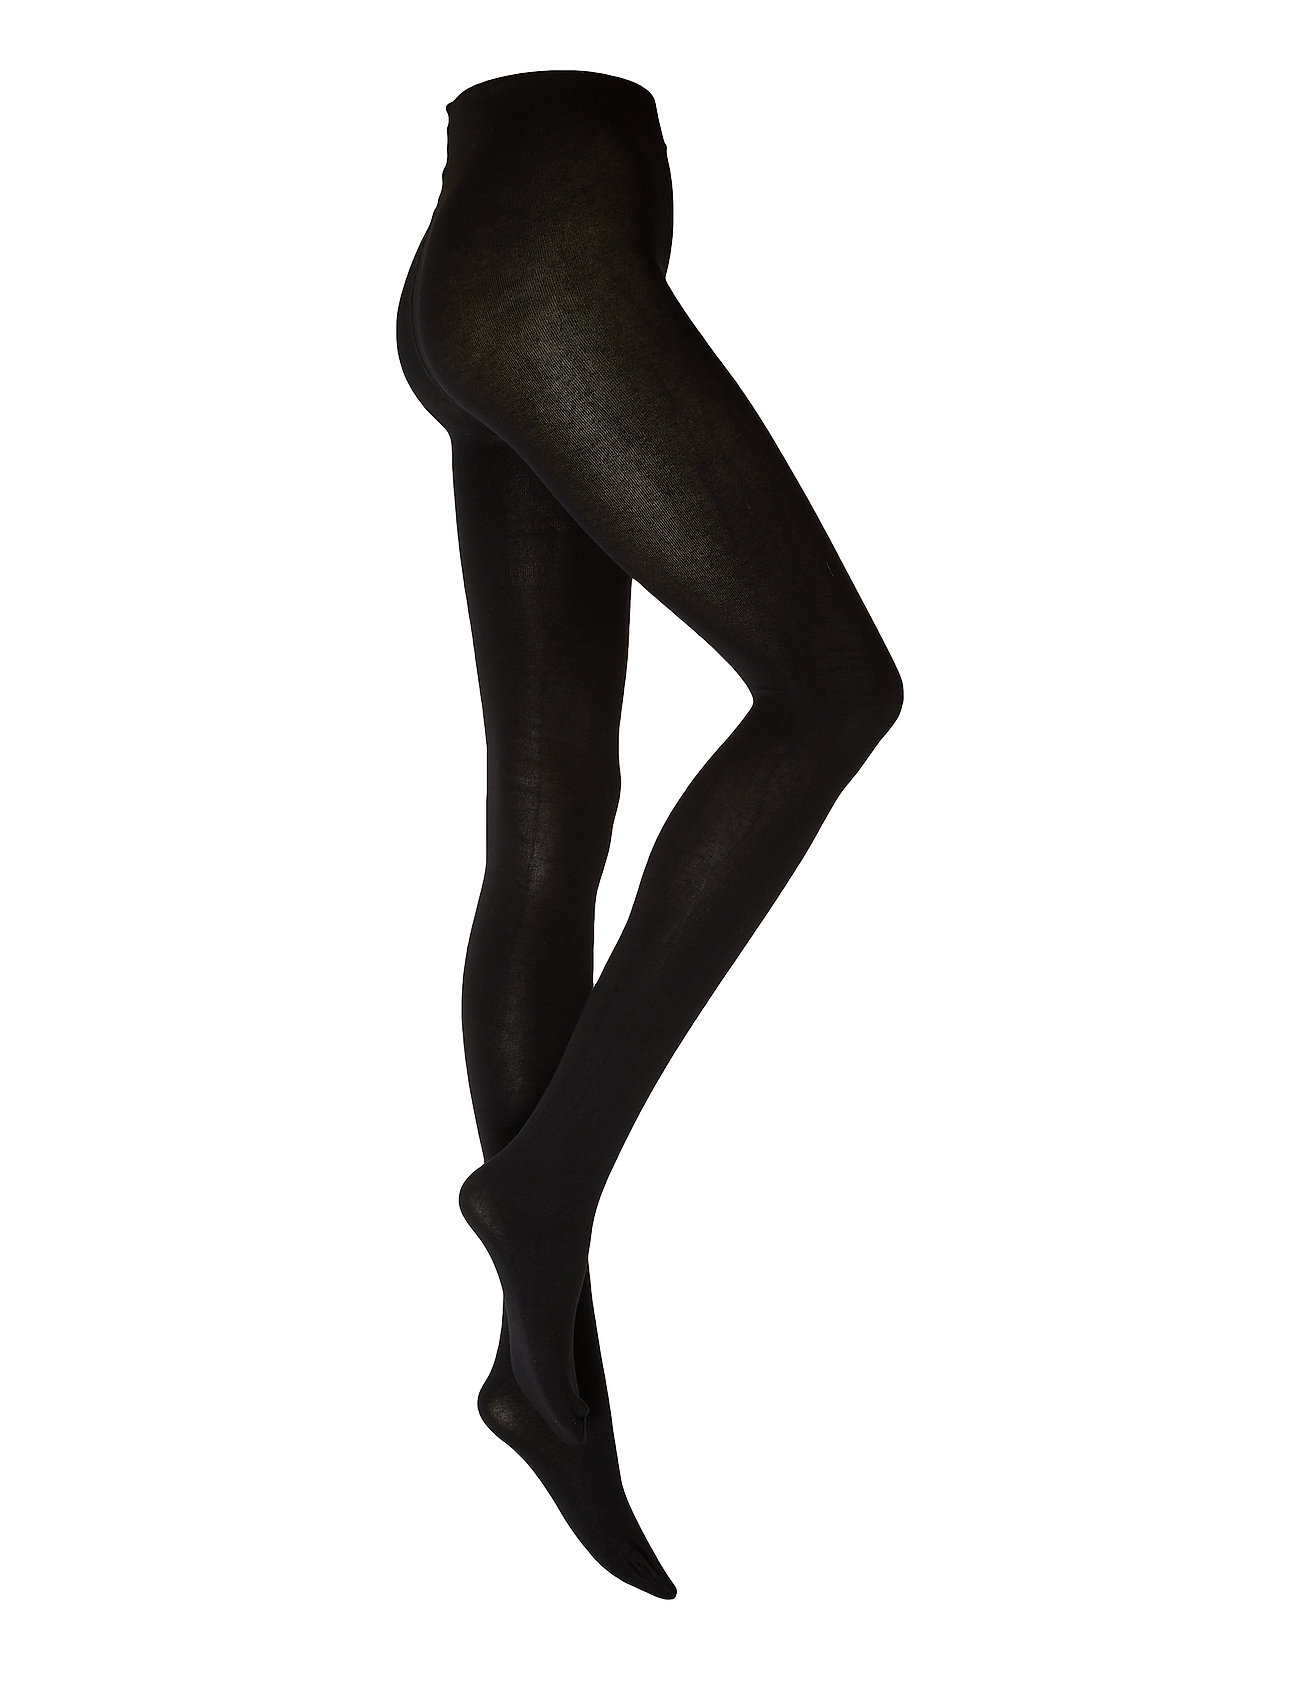 Doubleface Cotton/Wool Tights - Decoy